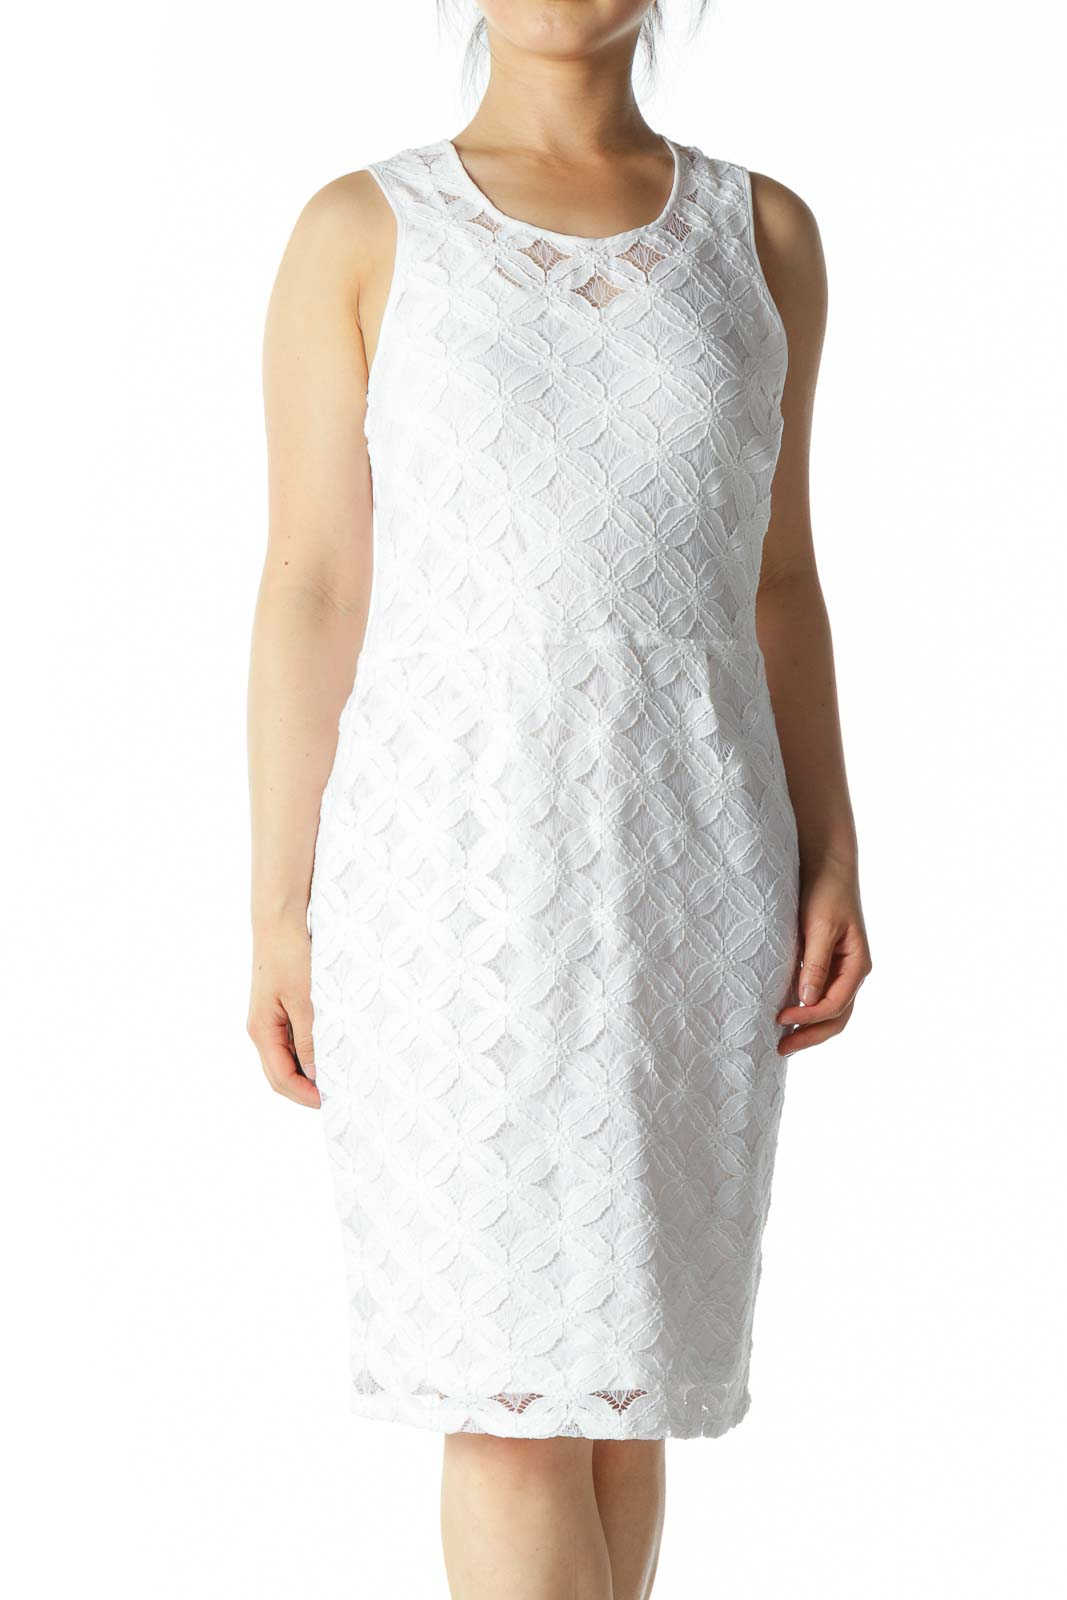 White A-Line Dress with Floral Pattern